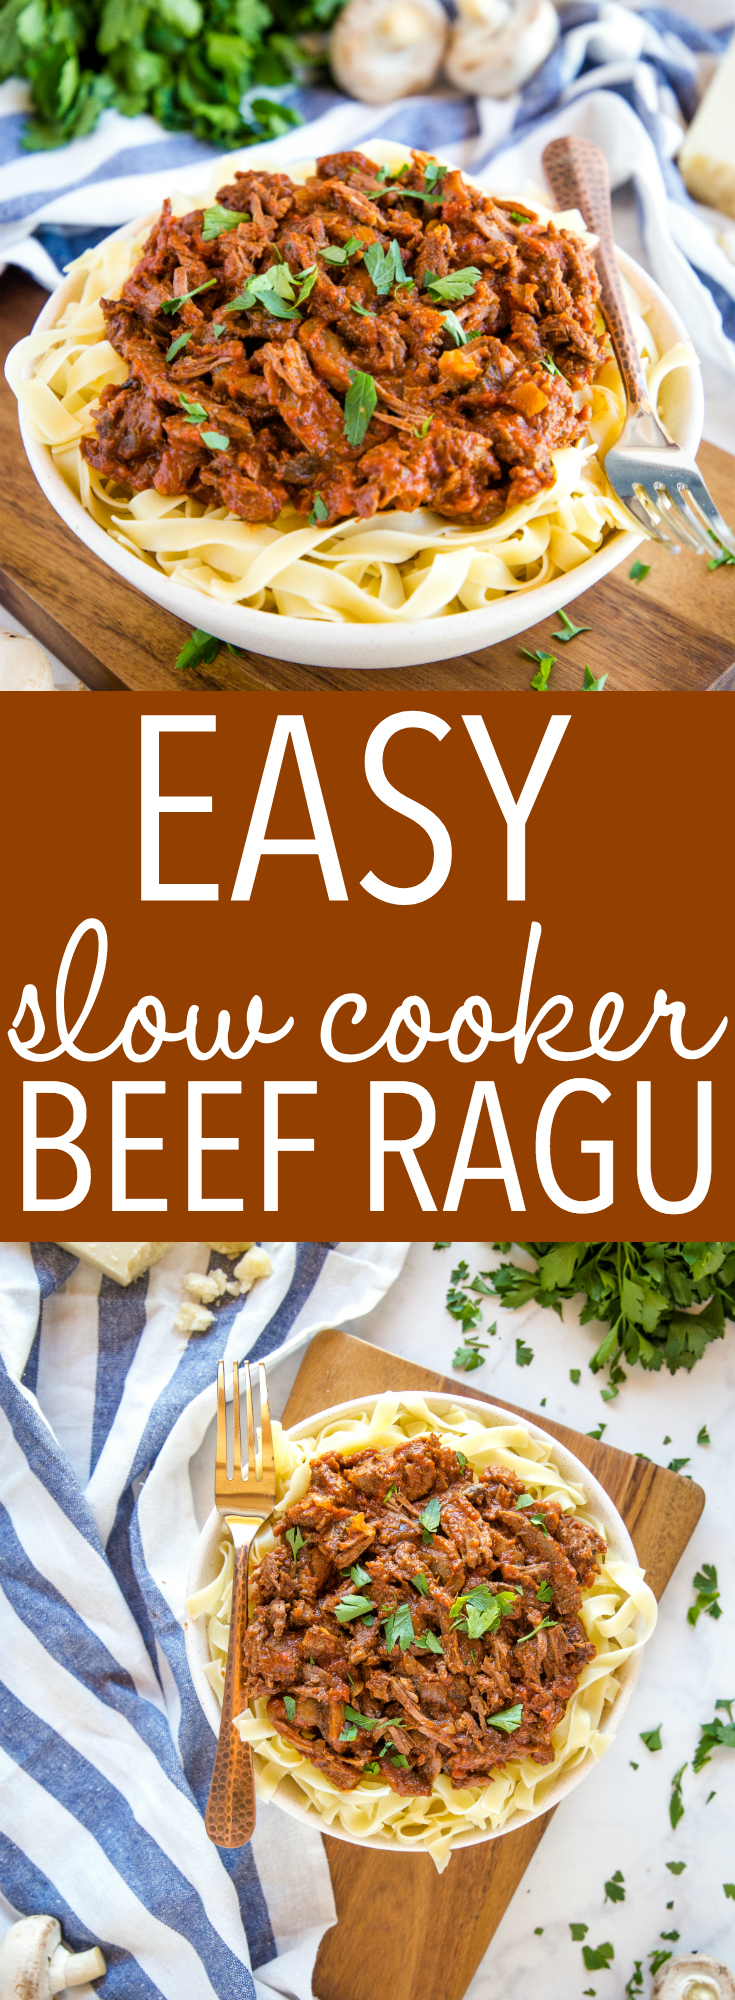 This Easy Slow Cooker Beef Ragu is comfort food at its finest, and a super simple weeknight pasta meal that the whole family will love!  Recipe from thebusybaker.ca! #beef #ragu #pasta #slowcooker #crockpot #easy #meal #family via @busybakerblog